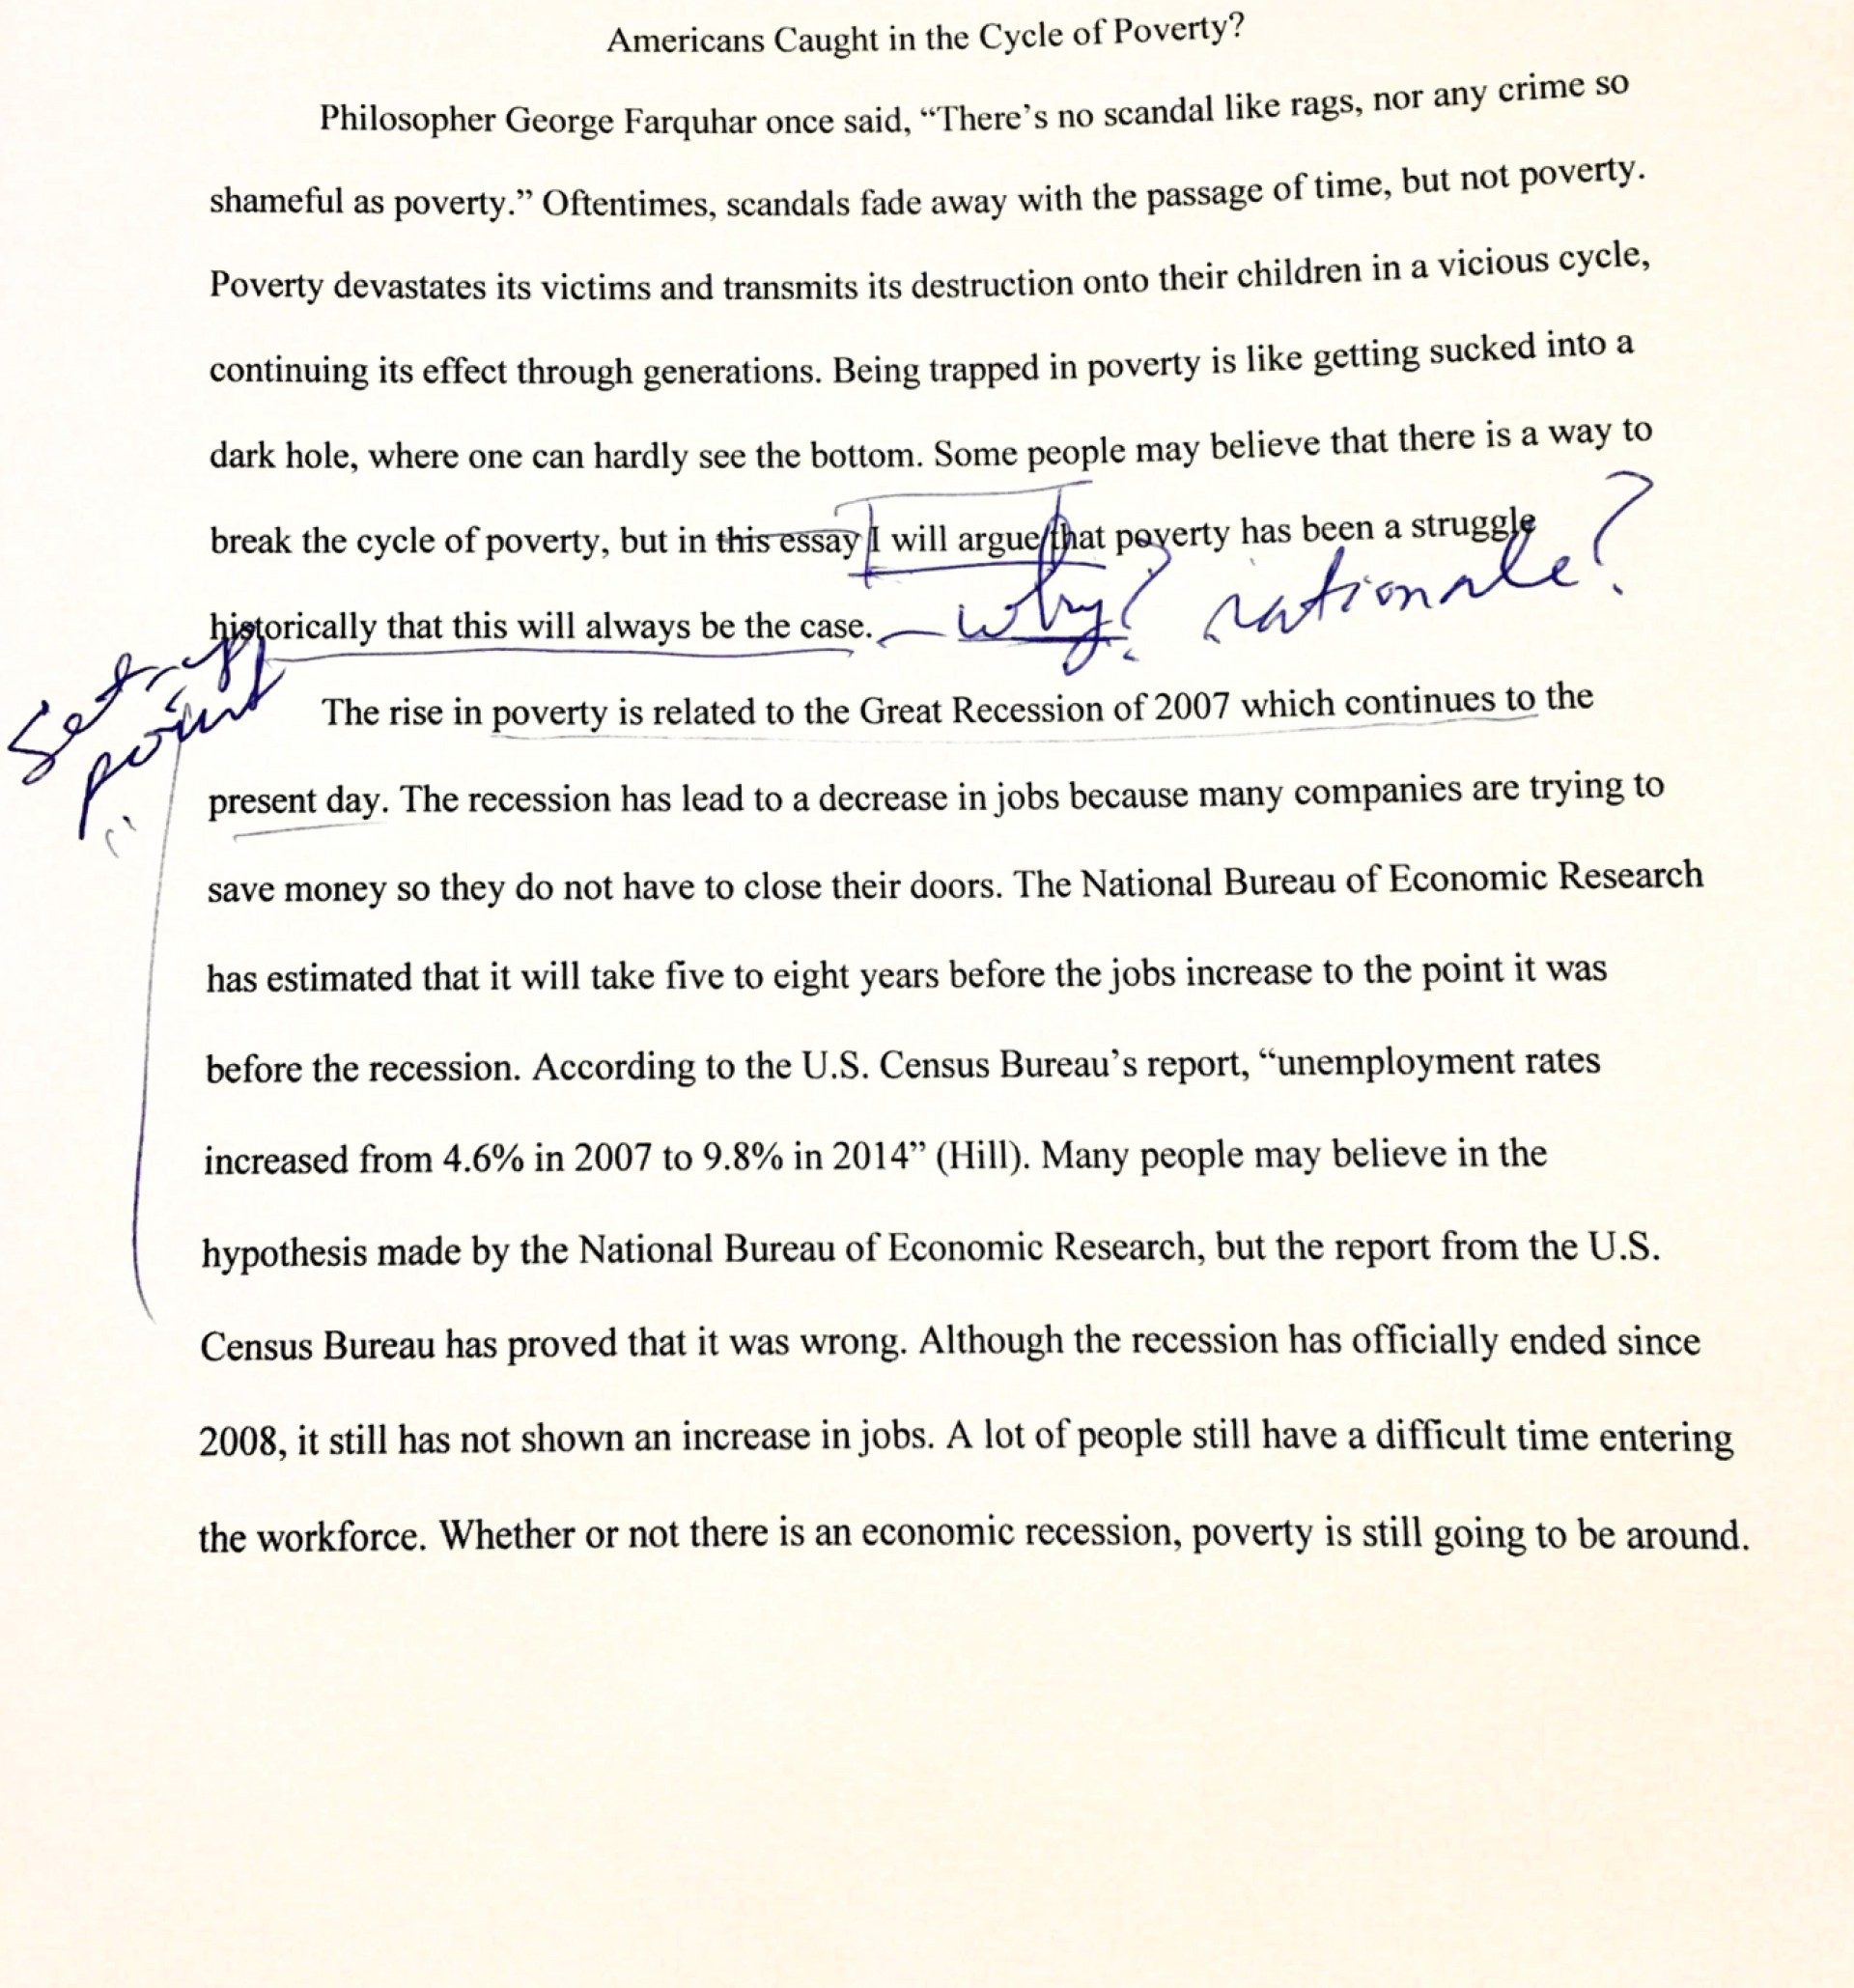 013 Essay Example What Is Claim In An Argumentative Can Someone Please Help Me Rewrite Or Fix Those Mistakes On My How To Write For Imposing A Apex Effective Brainly 1920